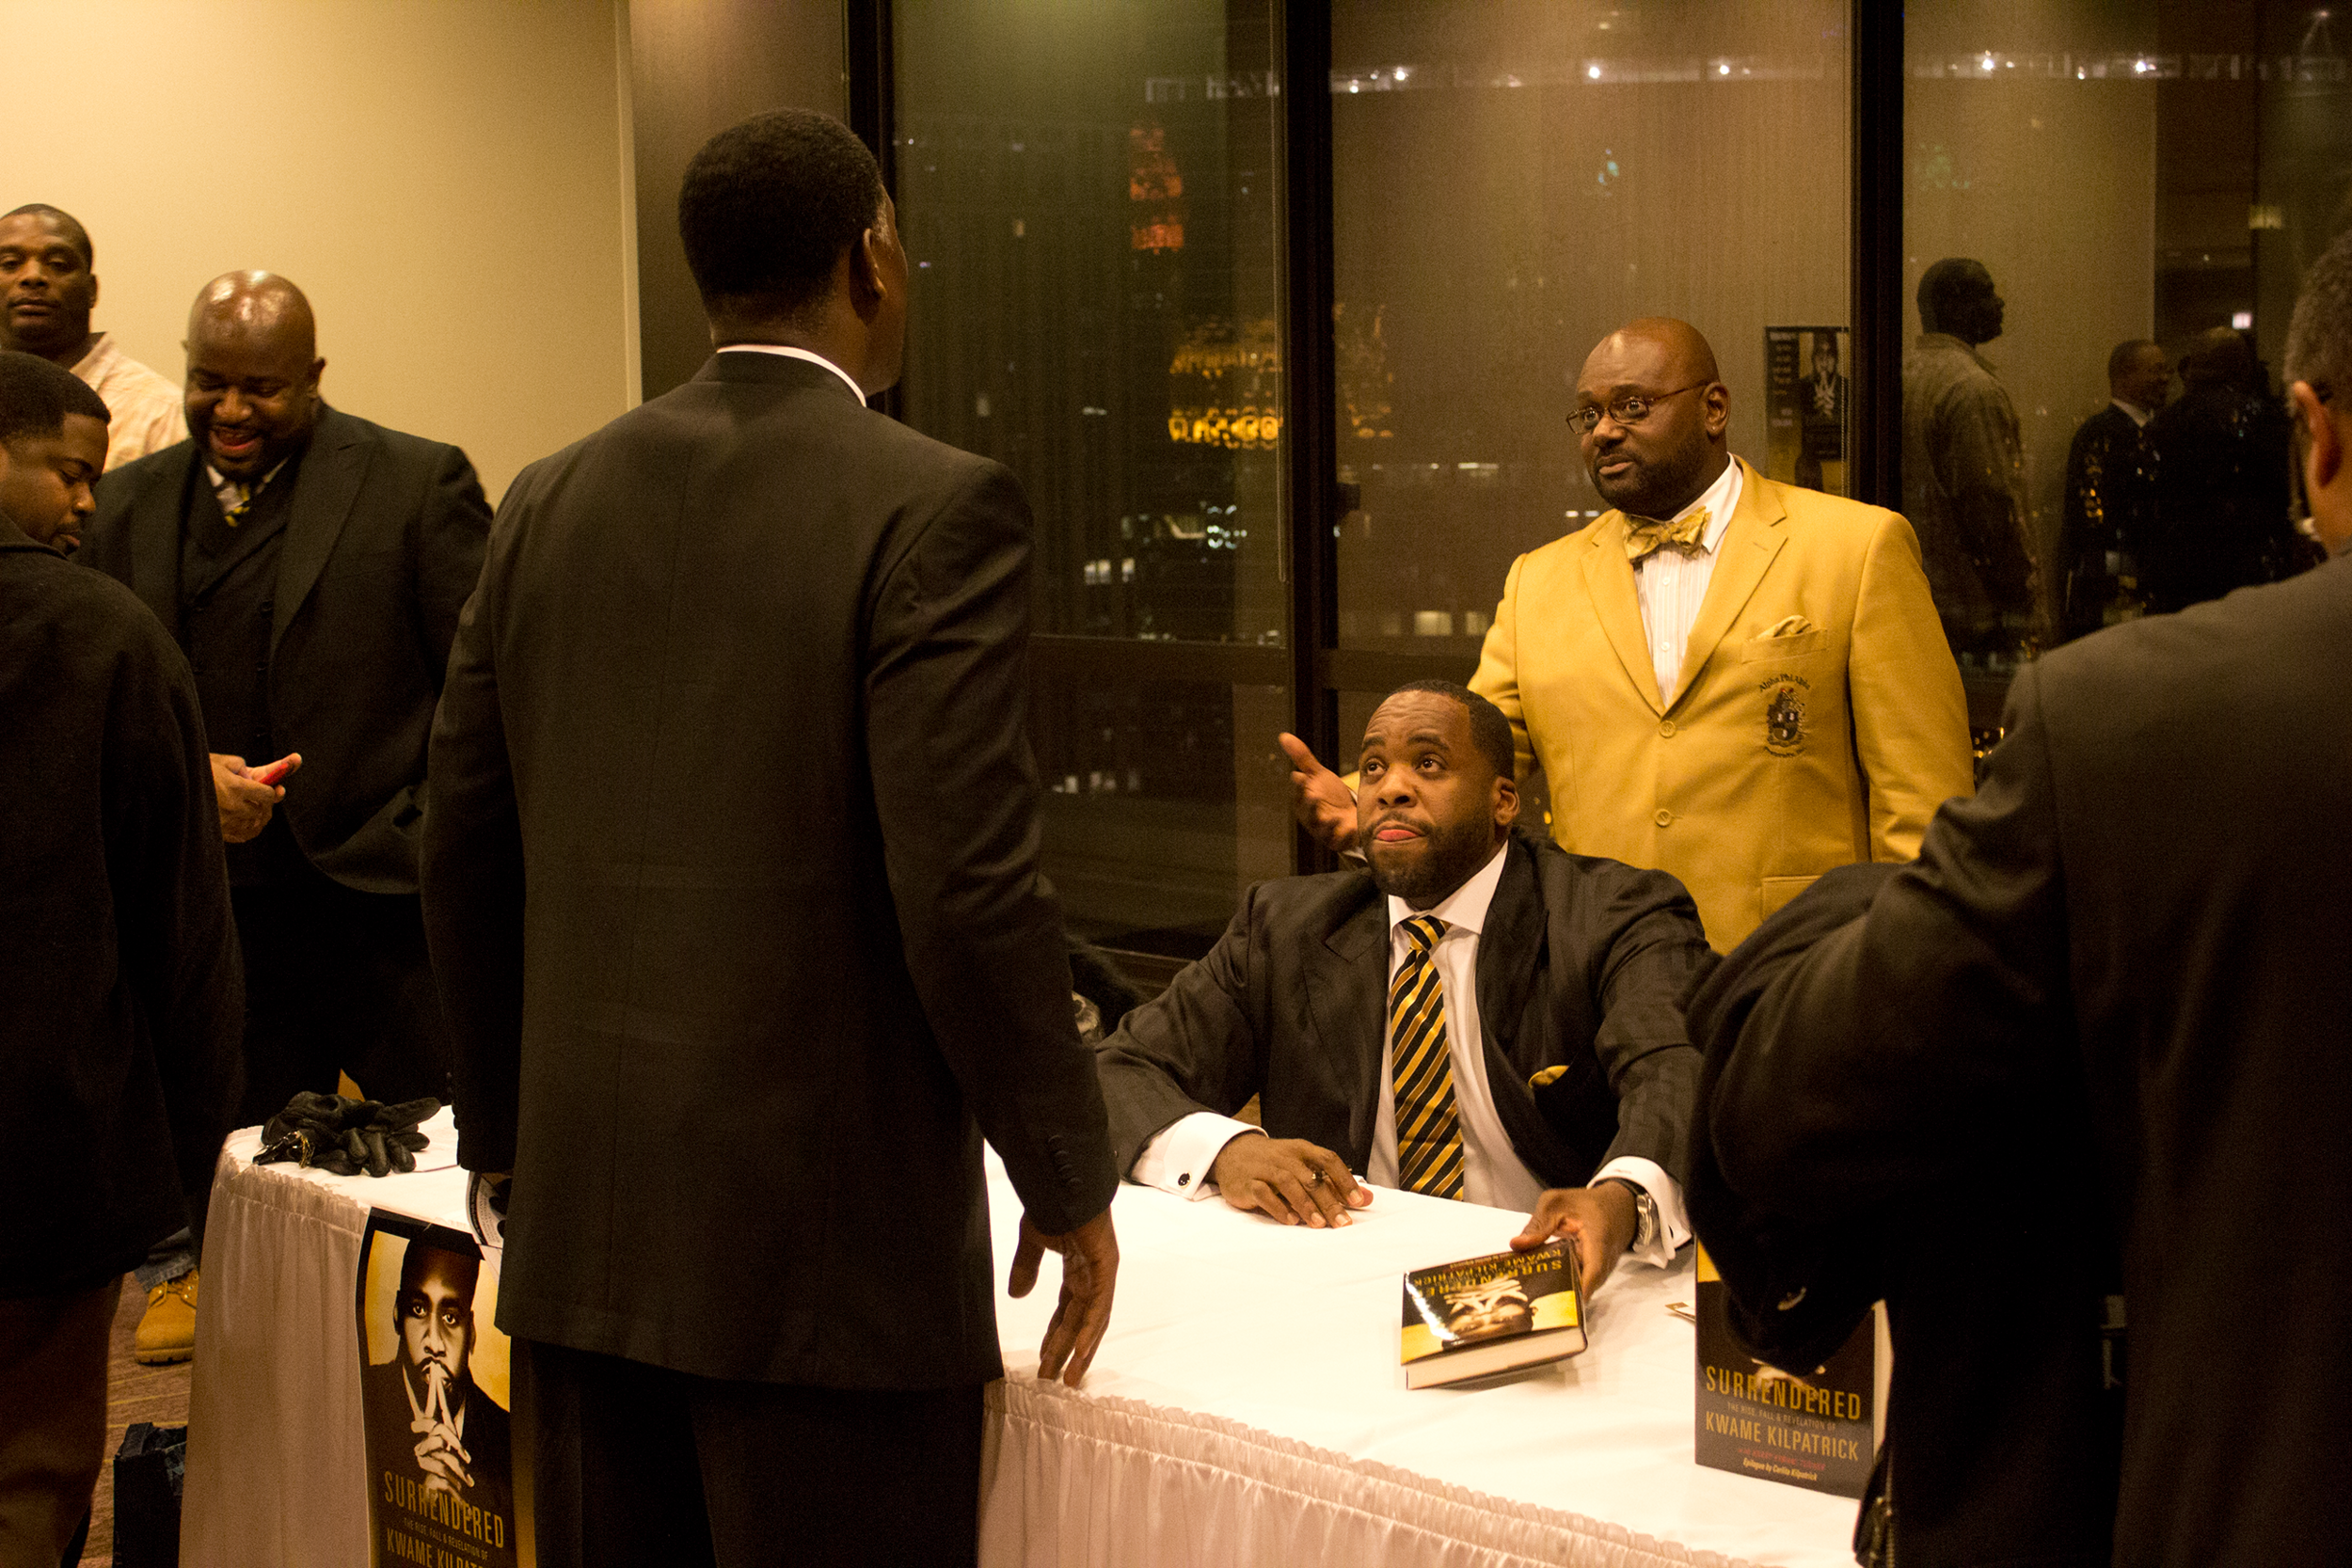 """Kwame Kilpatrick at a book signing for his 2011 memoir, """"Surrendered: The Rise, Fall and Revelation of Kwame Kilpatrick,"""" which he co-wrote with his cousin-in-law, Khary Turner. The city ordered that profits from the book sales be put in an escrow account, to help pay out Kwame's remaining restitution obligations.  Courtesy of Tim and Tobias Smith."""